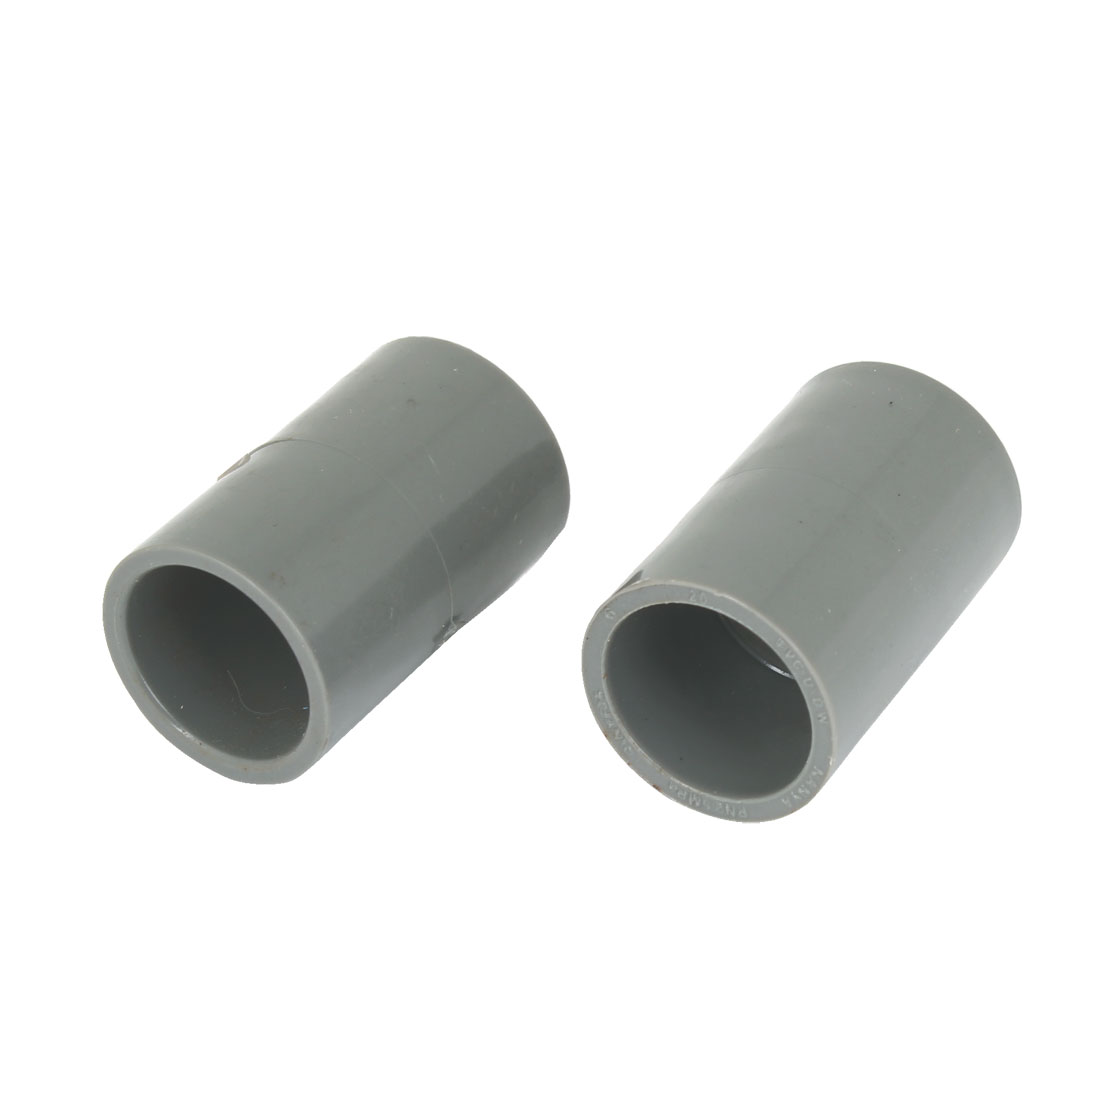 "2pcs Gray 20mm 0.79"" Inner Diameter PVC Drainage Straight Pipe Connectors"